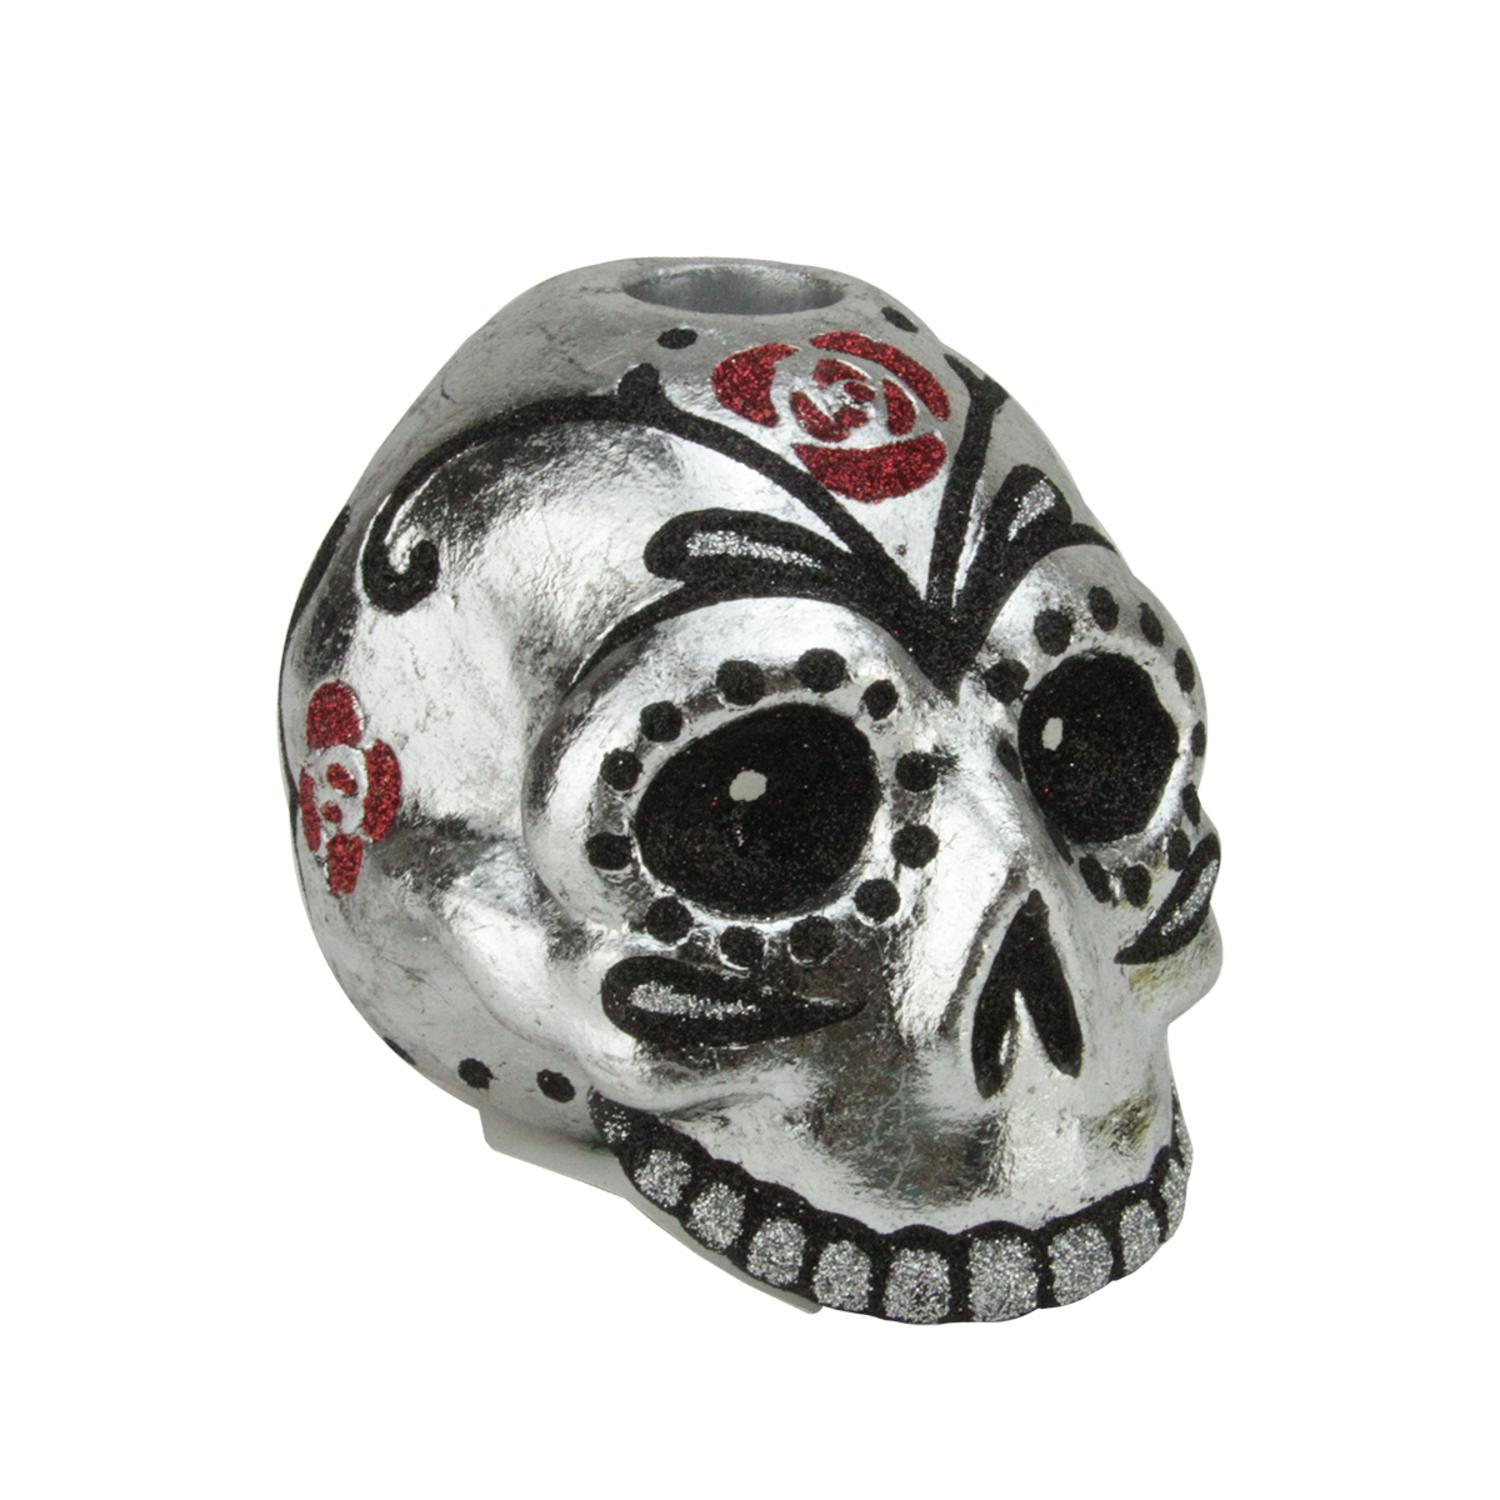 "4"" Silver Metallic Black and Red Glittered Skull Head Halloween Taper Candle Holder"